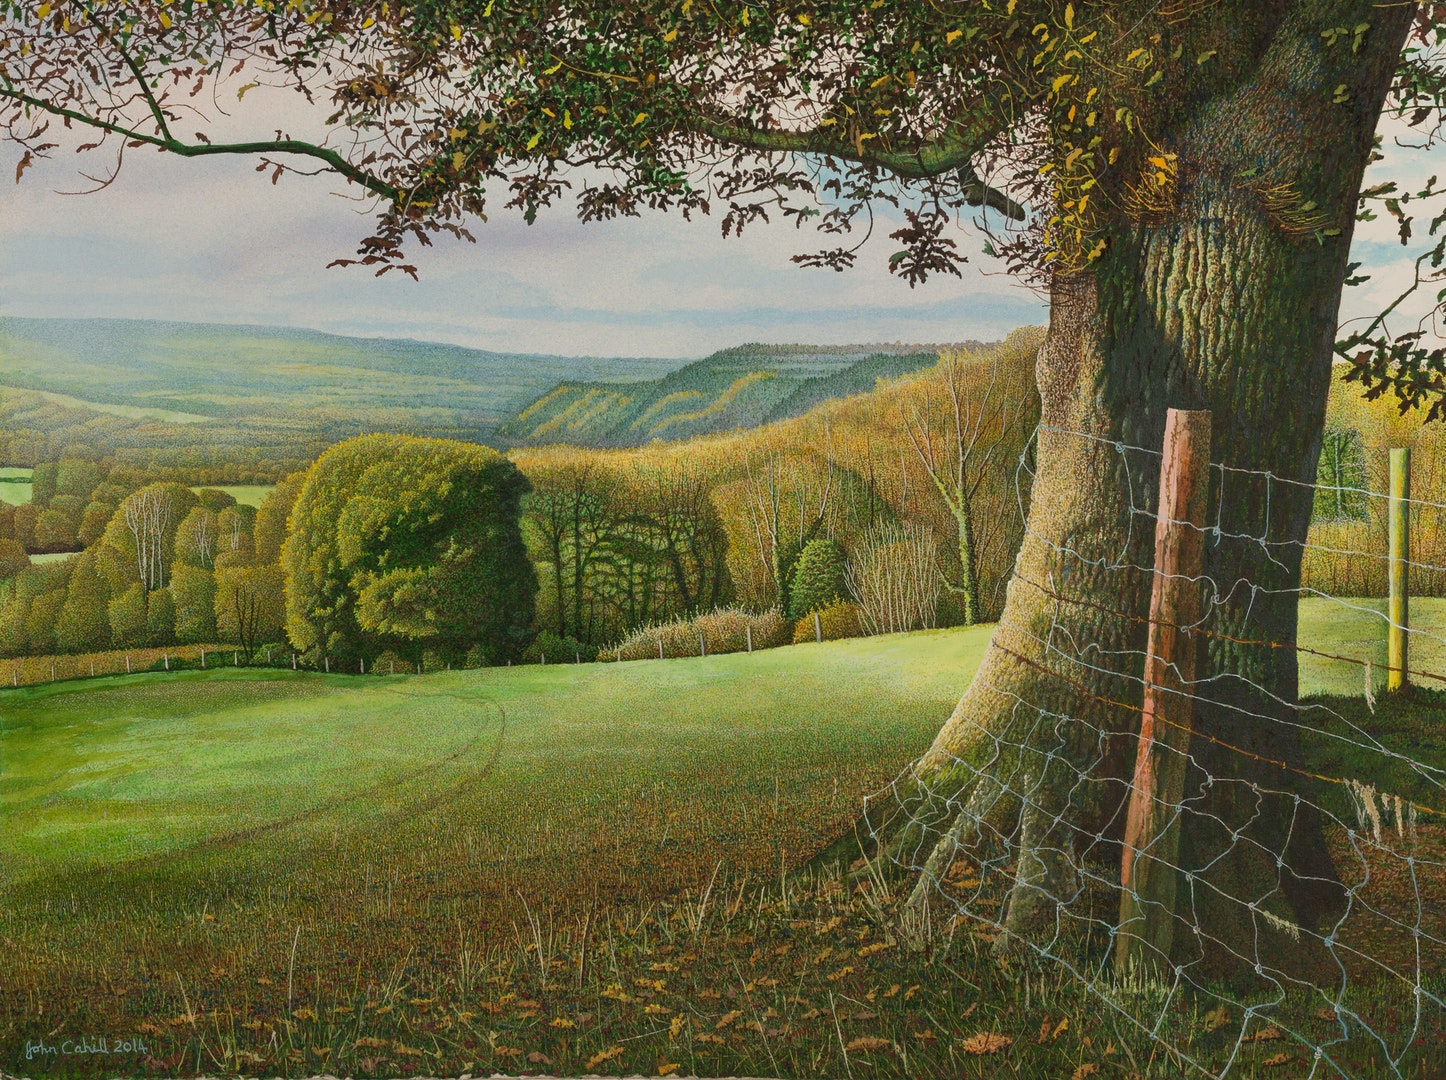 'View from Under an Autumn Oak', John Cahill, Acrylic and gouache on paper, 55 x 75 cm